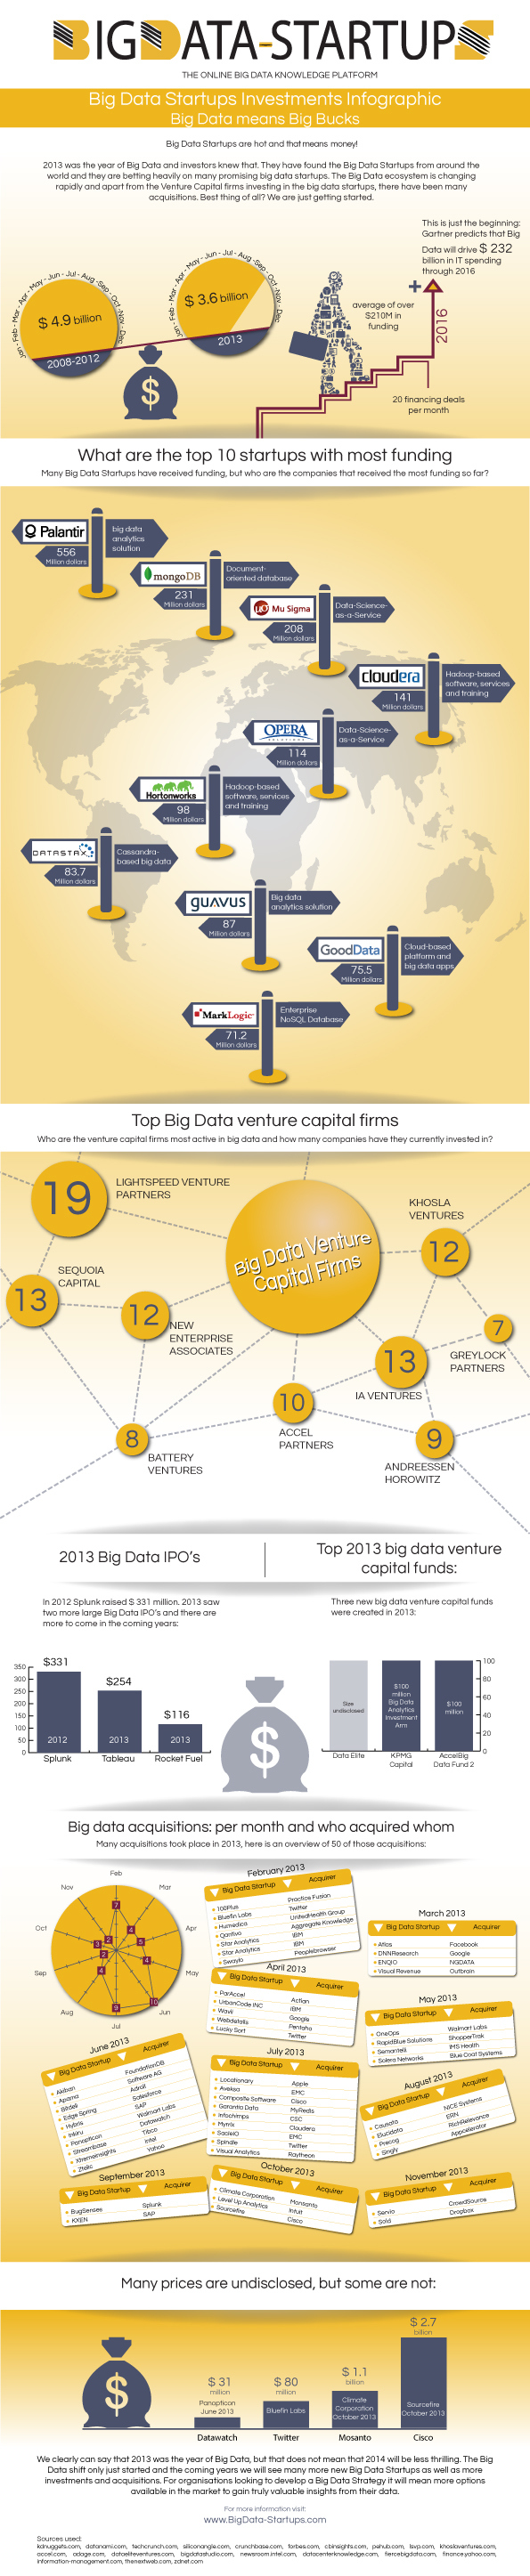 Big Data Starups Investment Infographic - Big Data means Big Buc